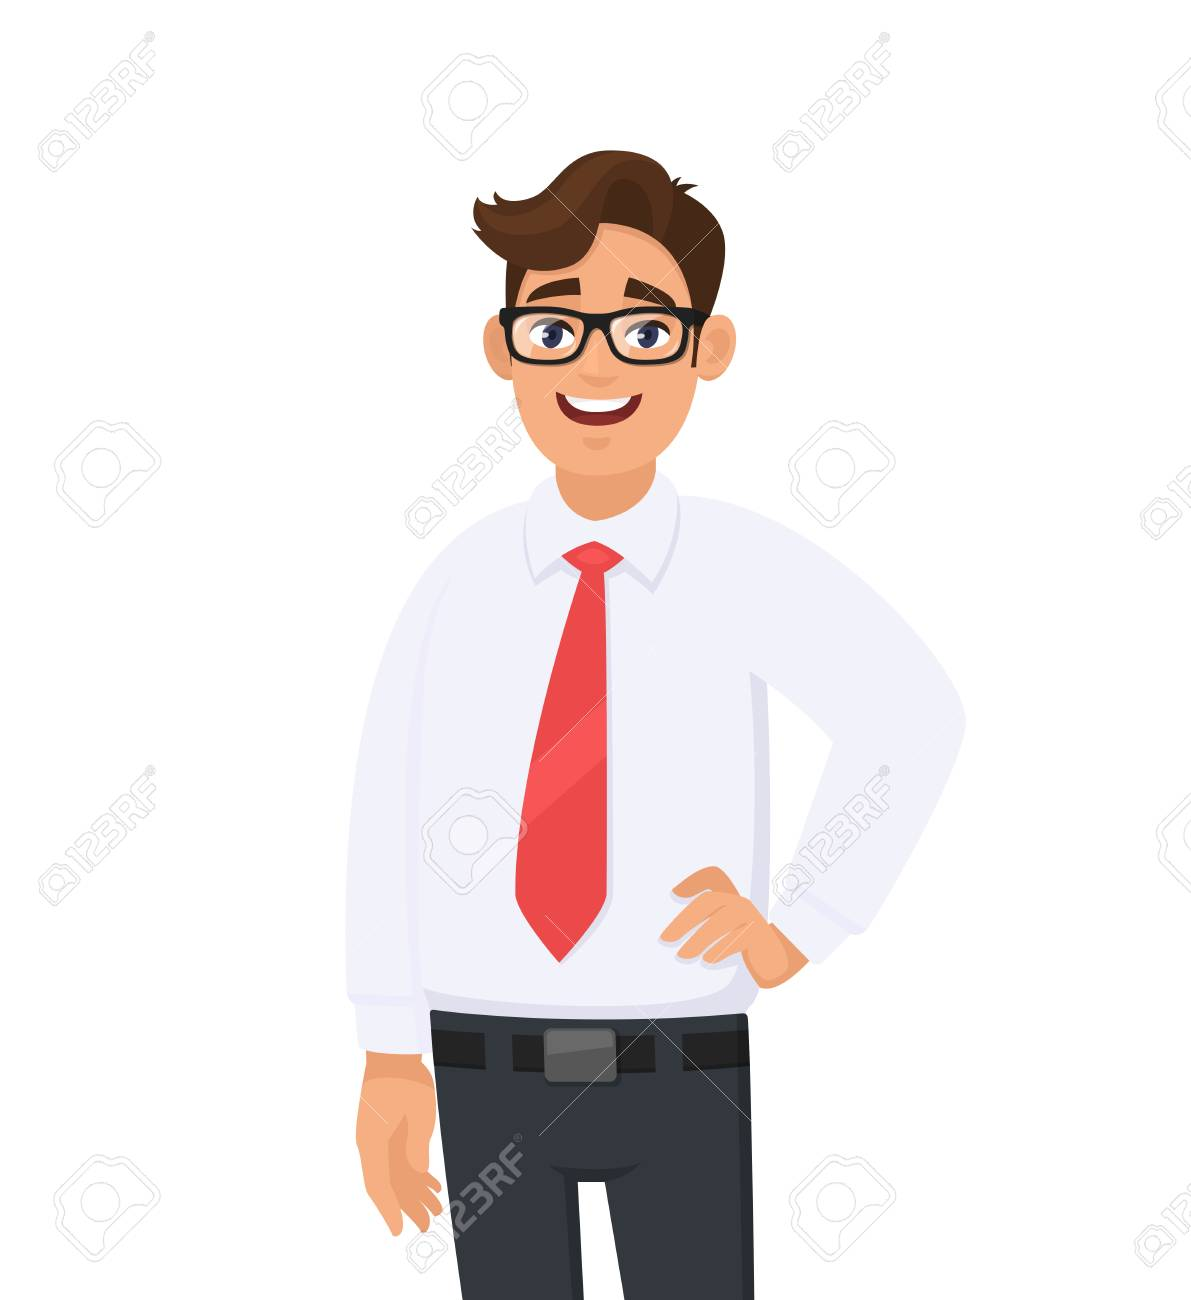 Portrait of confident handsome young businessman in white shirt and red tie, standing against white background. Human emotion and businessman concept illustration in vector cartoon flat style. - 125053486